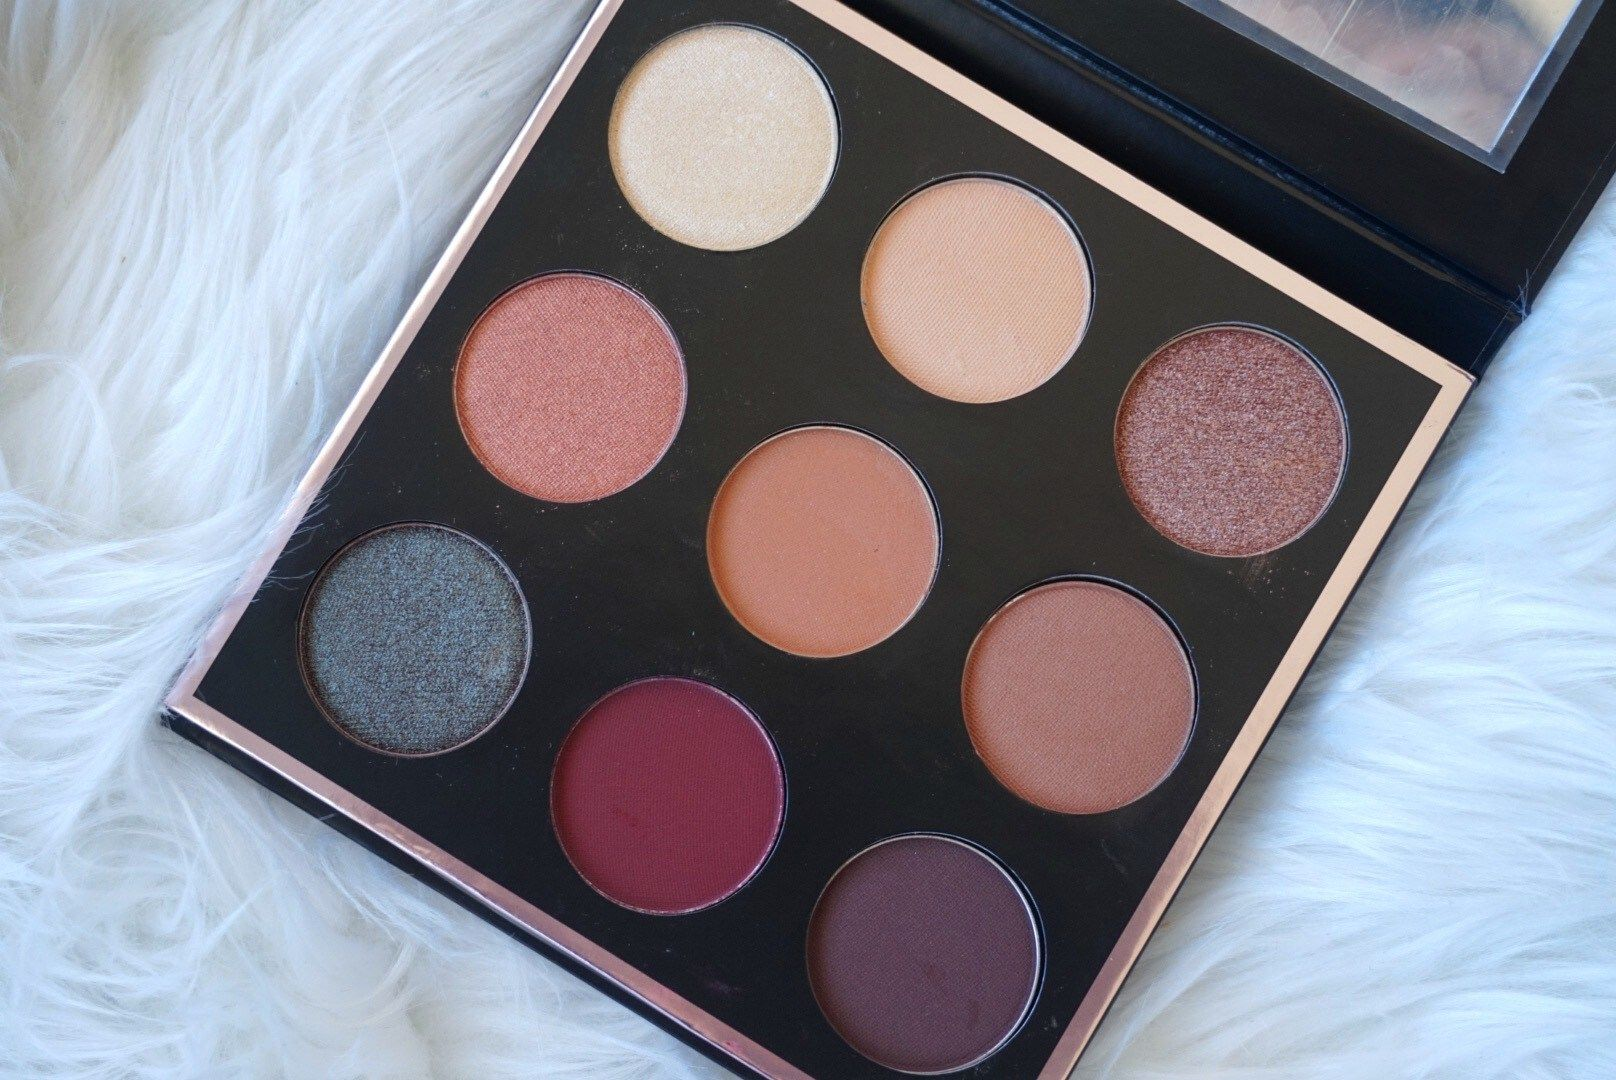 MANNY MUA X MAKEUP GEEK PALETTE FULL REVIEW AND SWATCHES